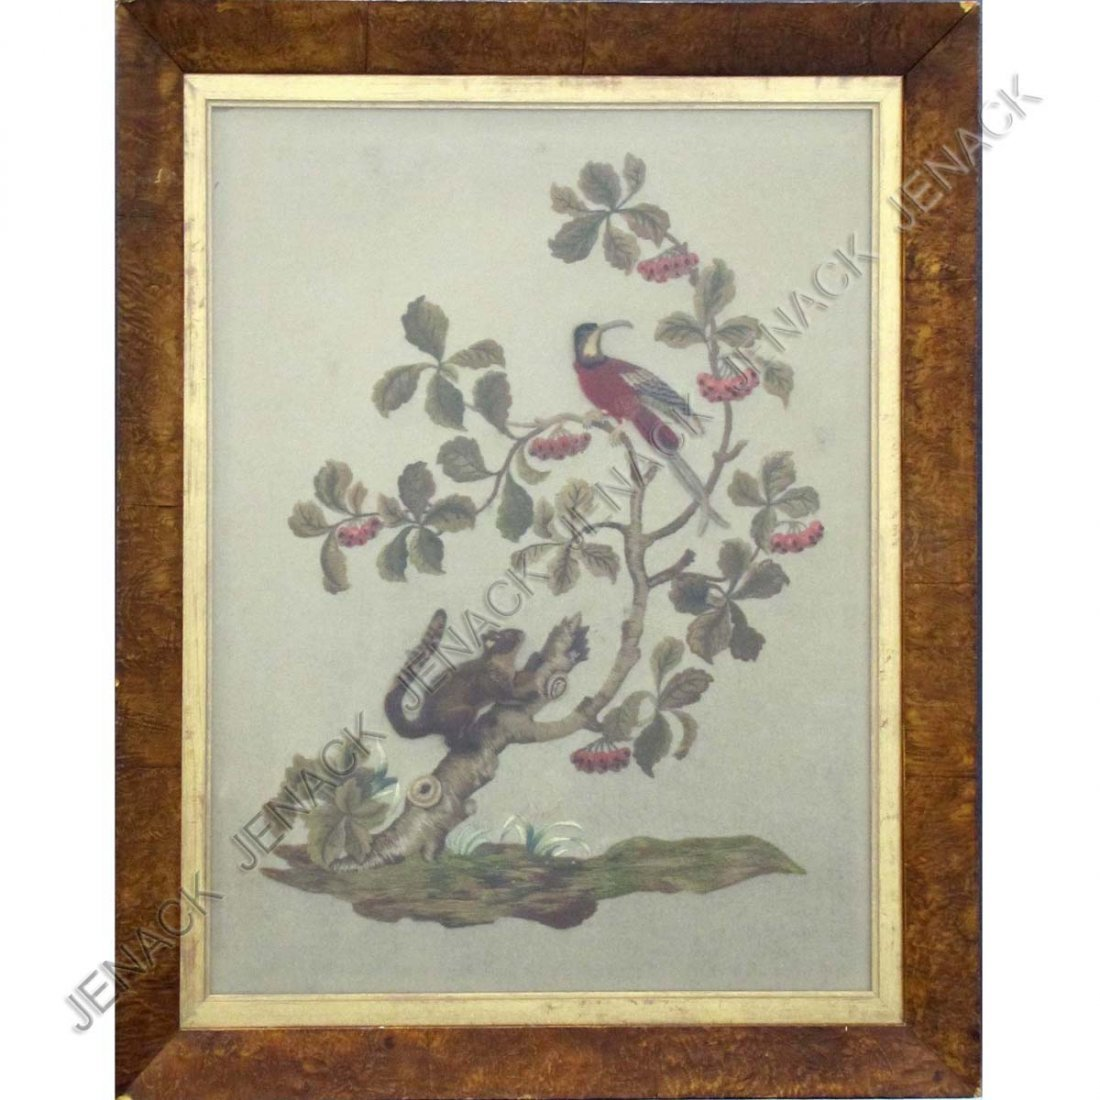 20: VINTAGE WOOL EMBROIDERY AND STUMP WORK PANEL,19THC